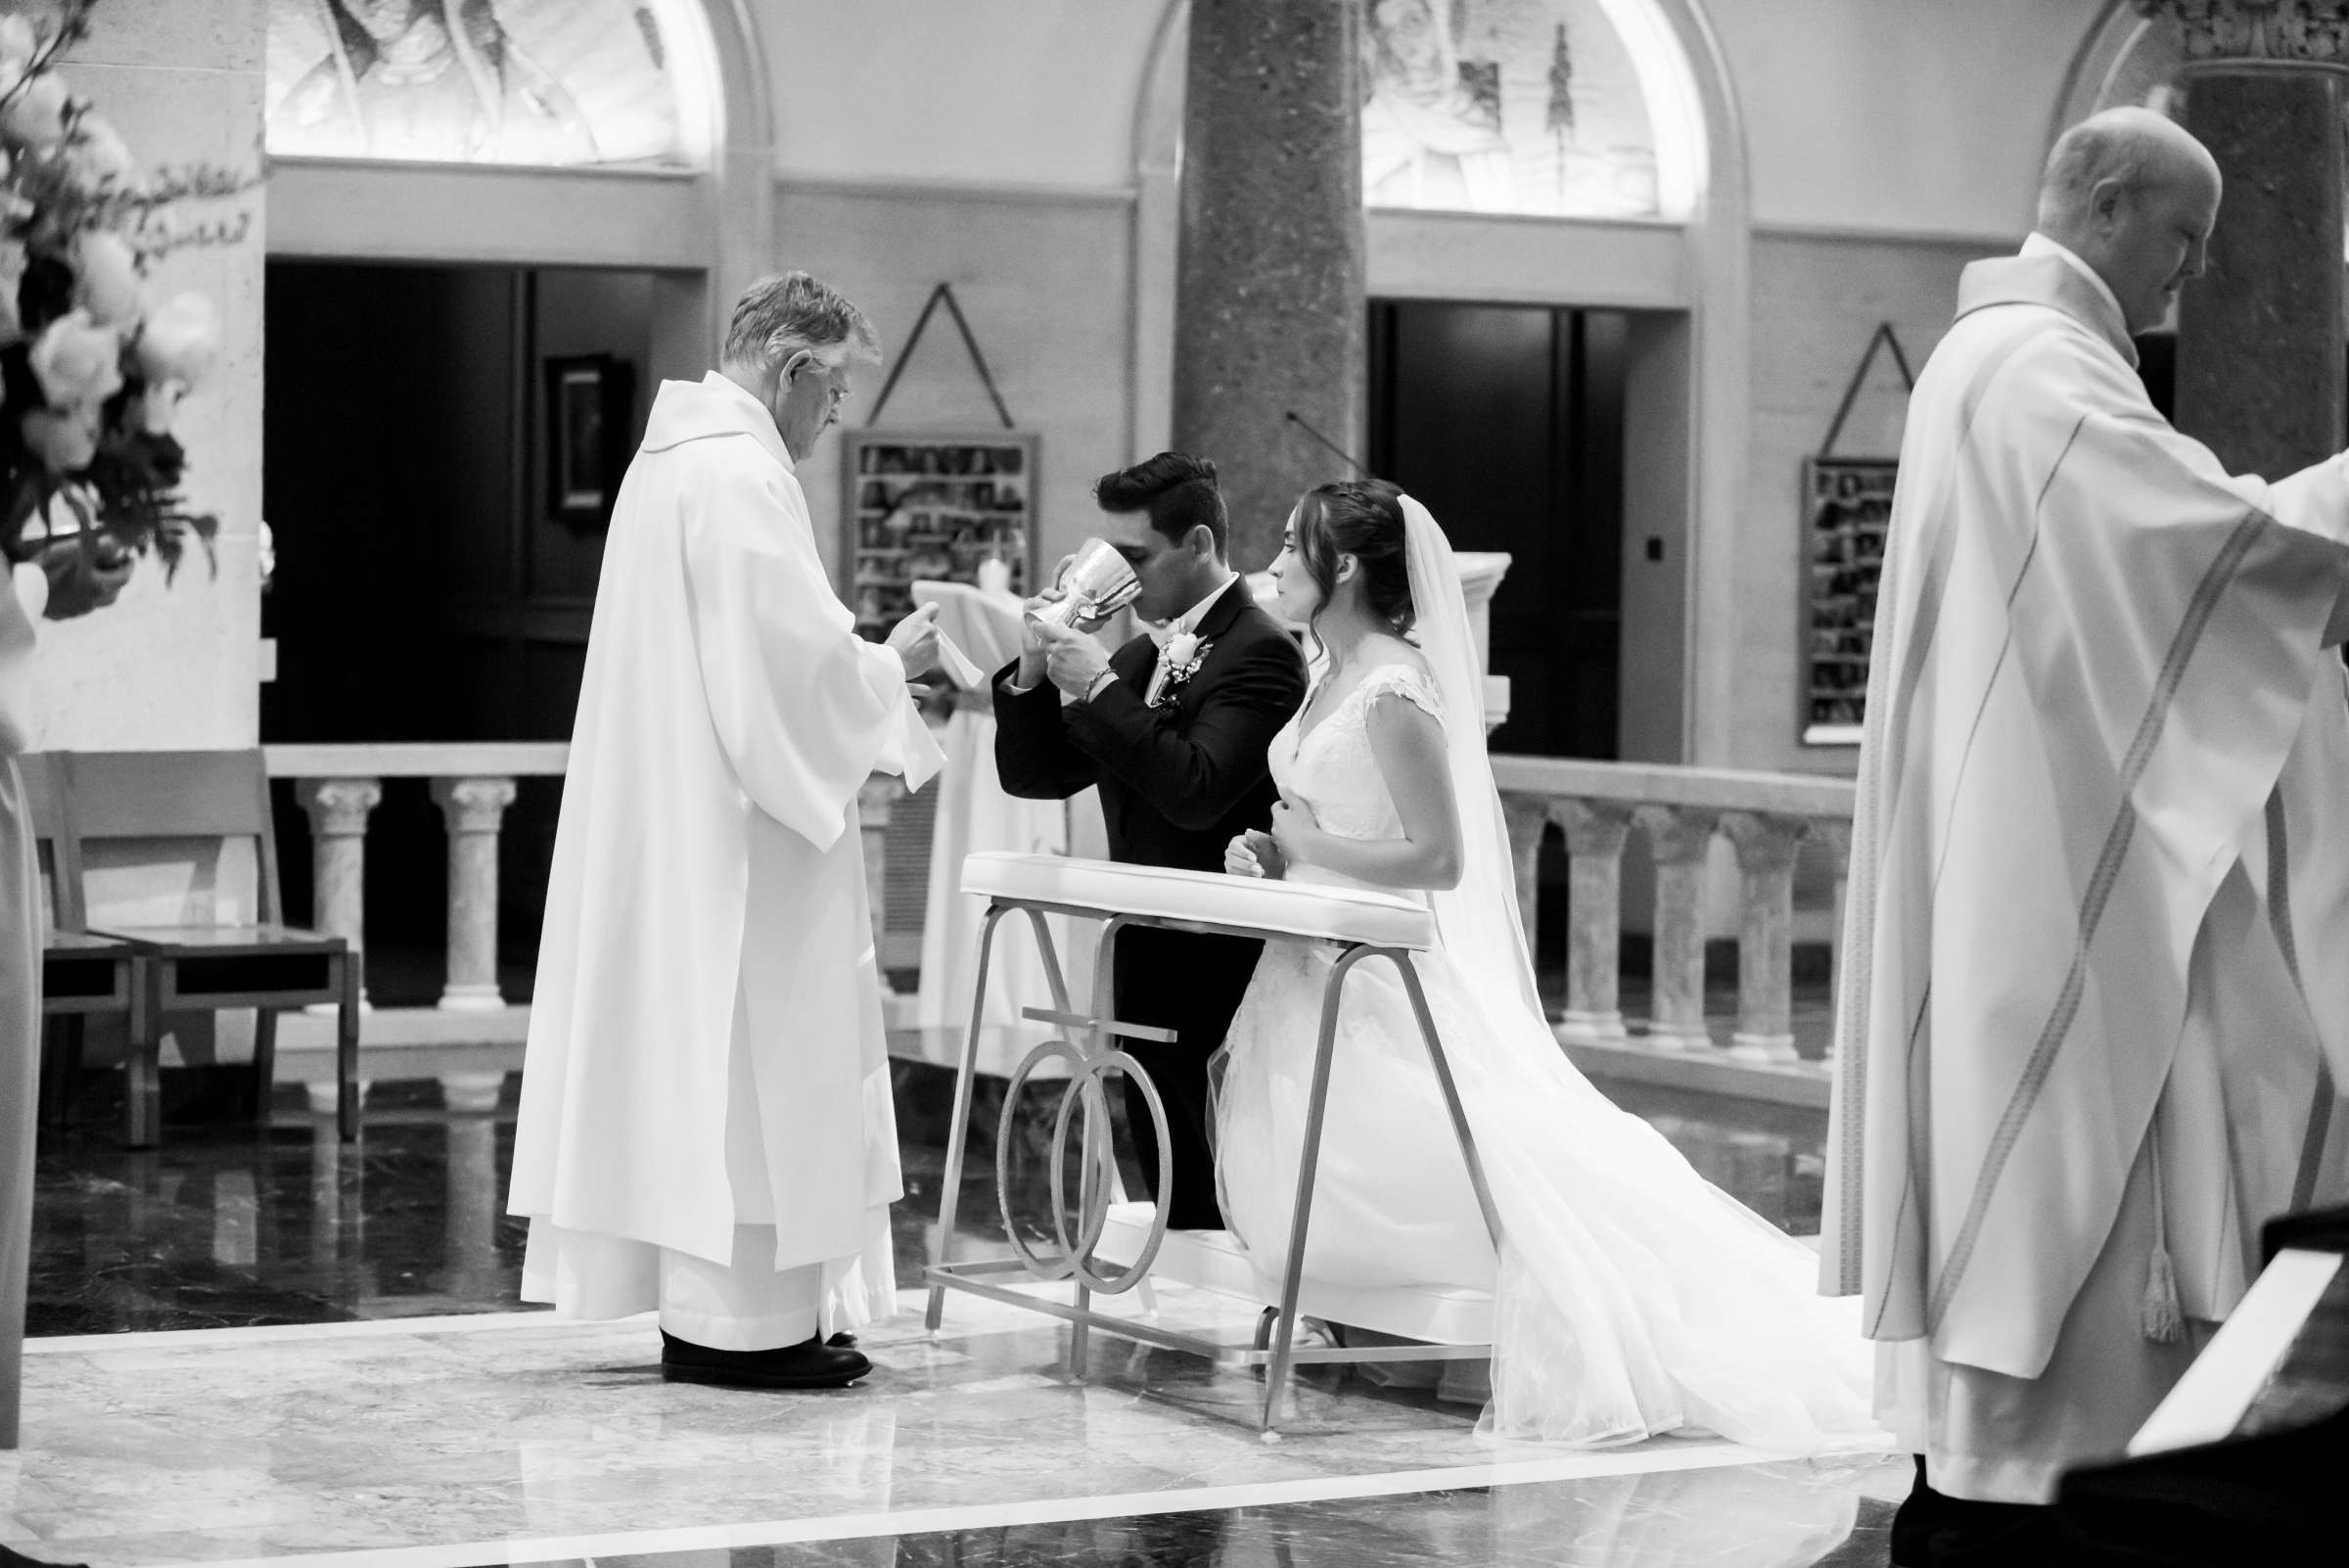 The Immaculata Wedding, Arianna and Jonah Wedding Photo #131 by True Photography